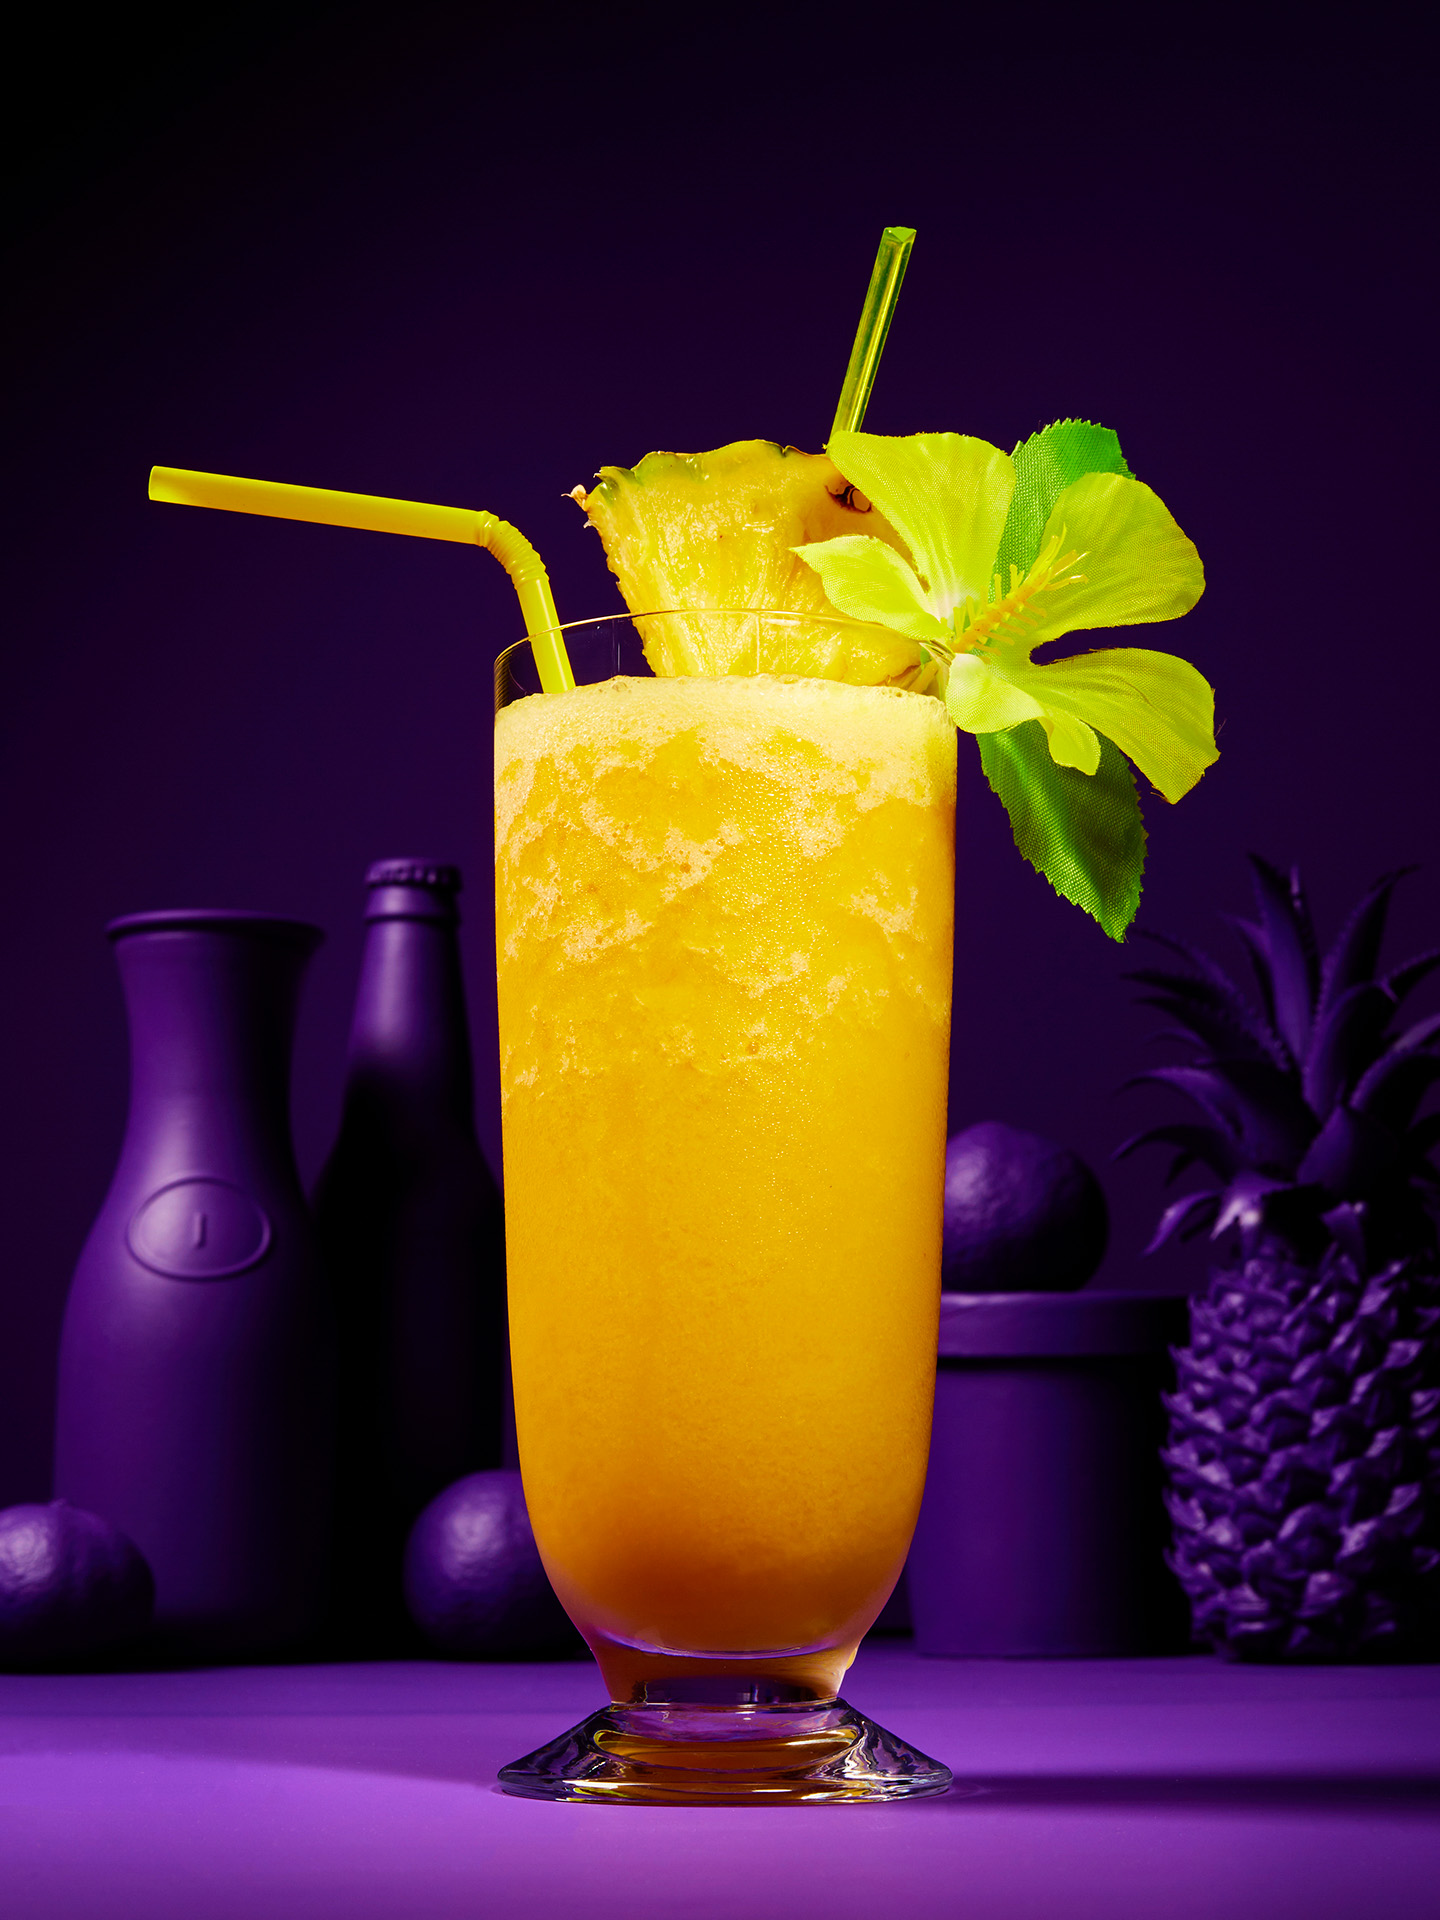 dominic-perri-new-work-pineapple-smoothie-purple